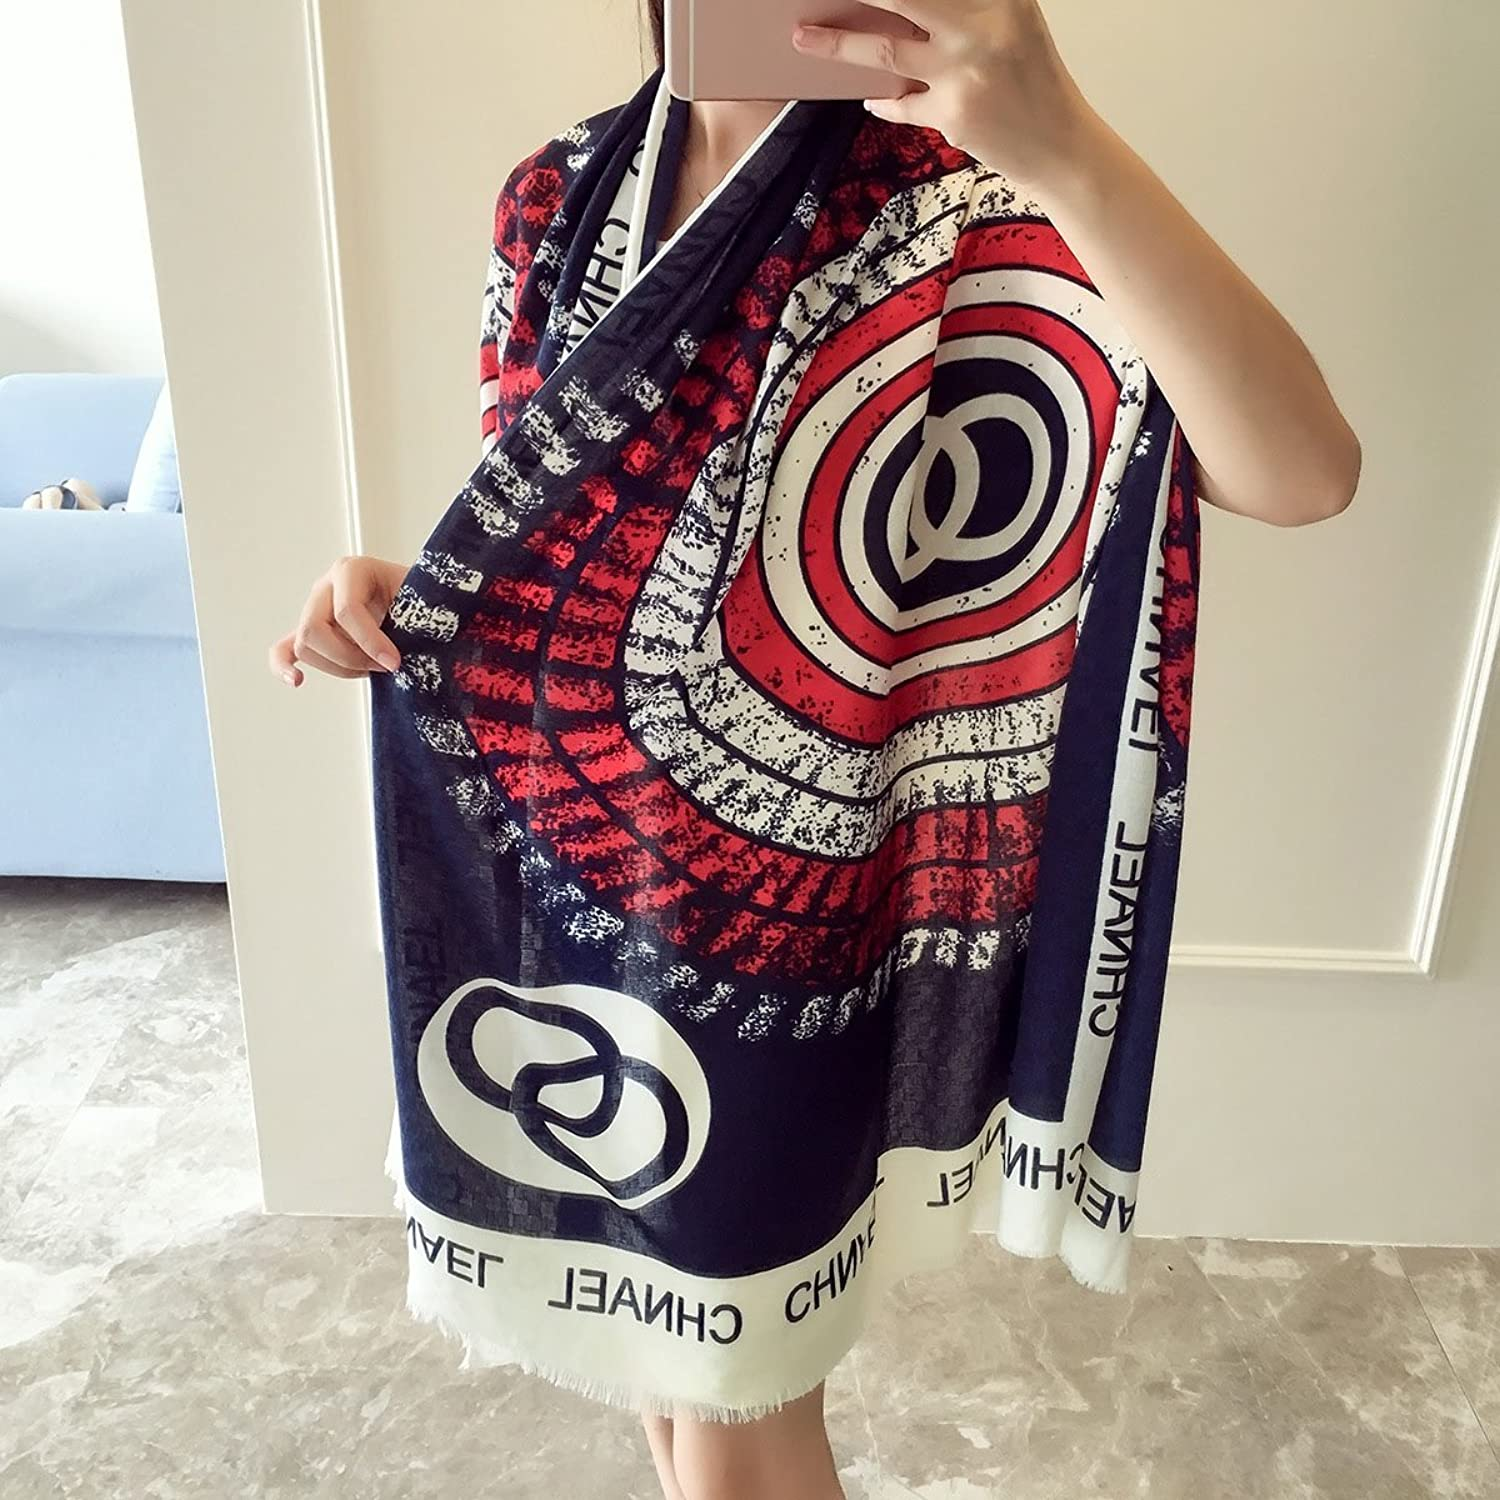 Lady's Shawl Beach Towel Scarves States Cycling Sunscreen Shawl Seaside Vacation Visor Spring And Autumn Beach Towel Decoration ( color   3 )